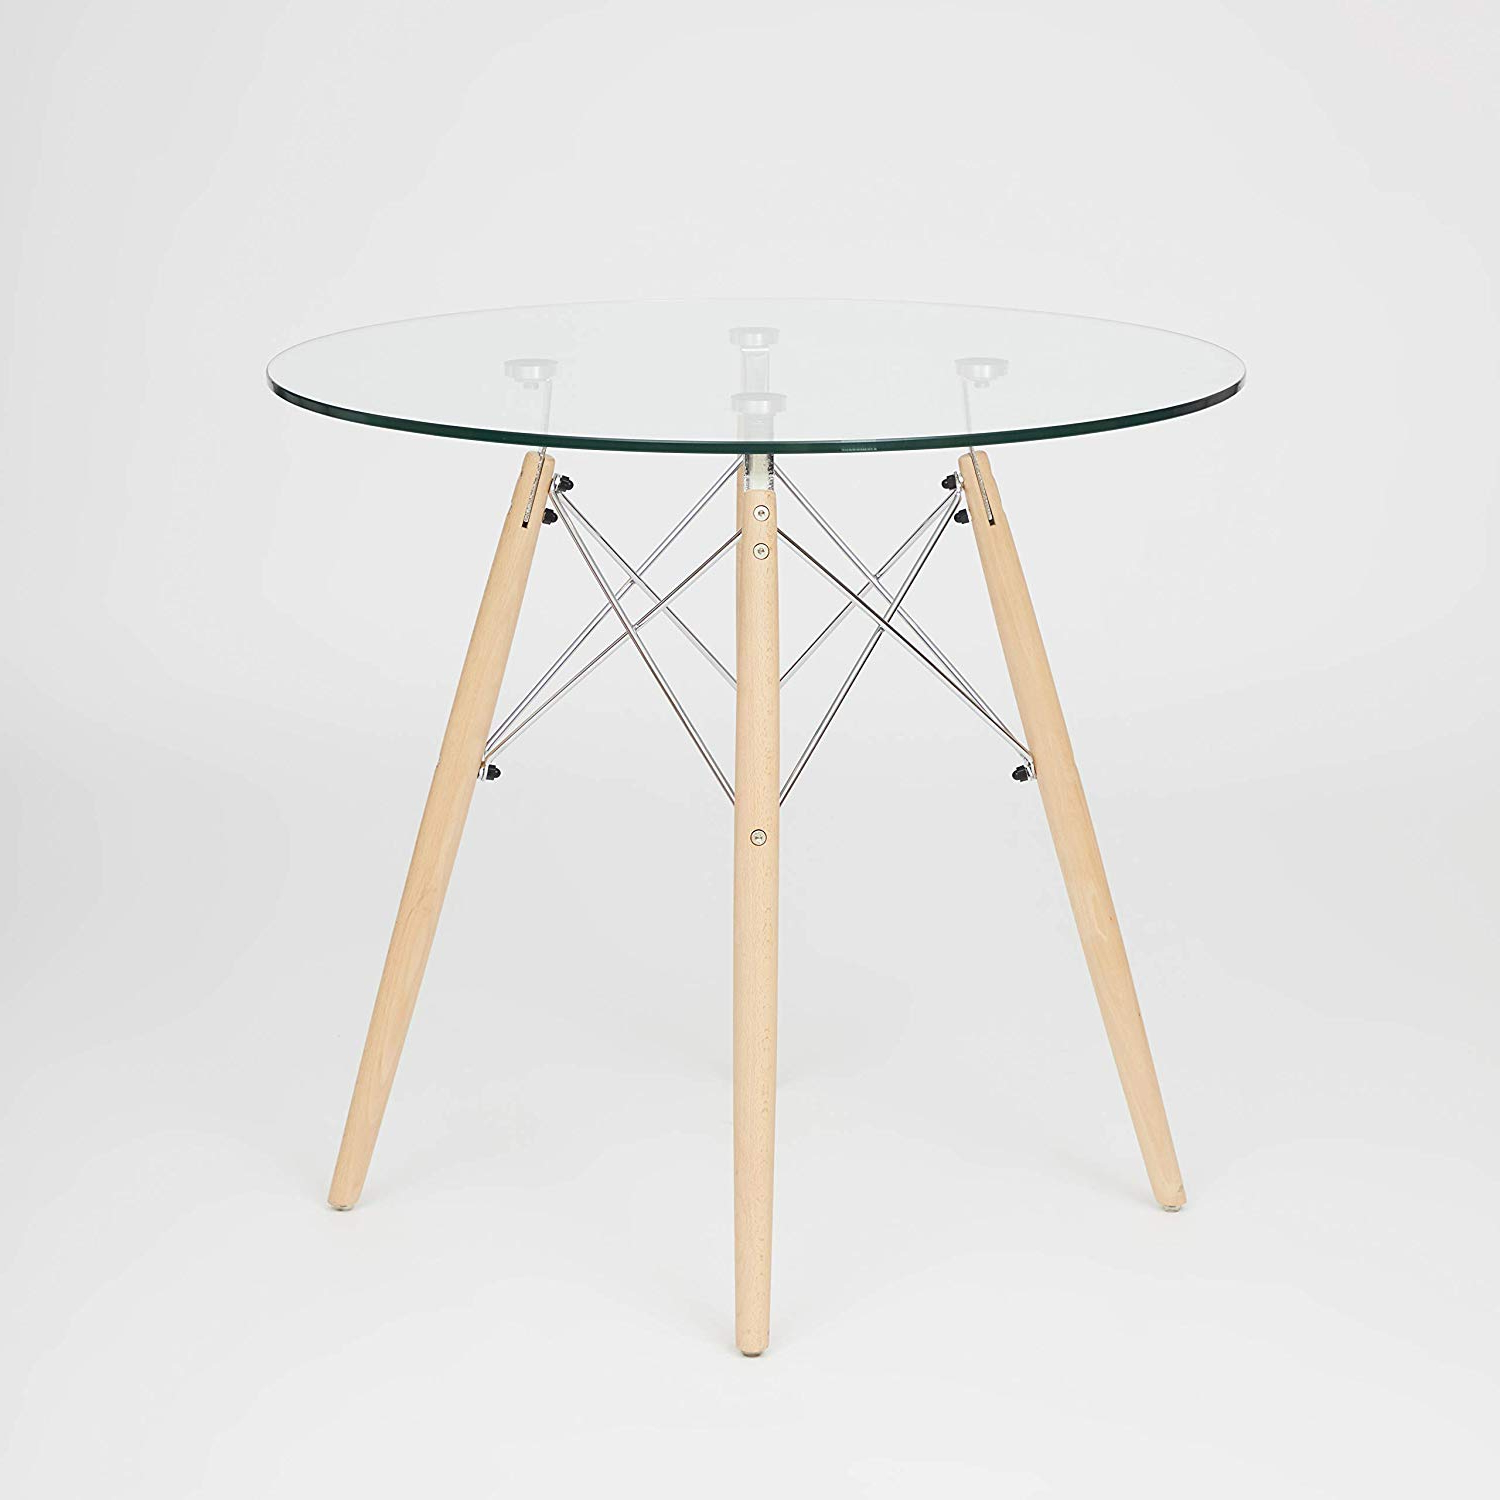 Most Recent Ochs Dining Table Glass Round Top With Eiffel Retro Wooden Throughout Retro Round Glasstop Dining Tables (Gallery 16 of 30)